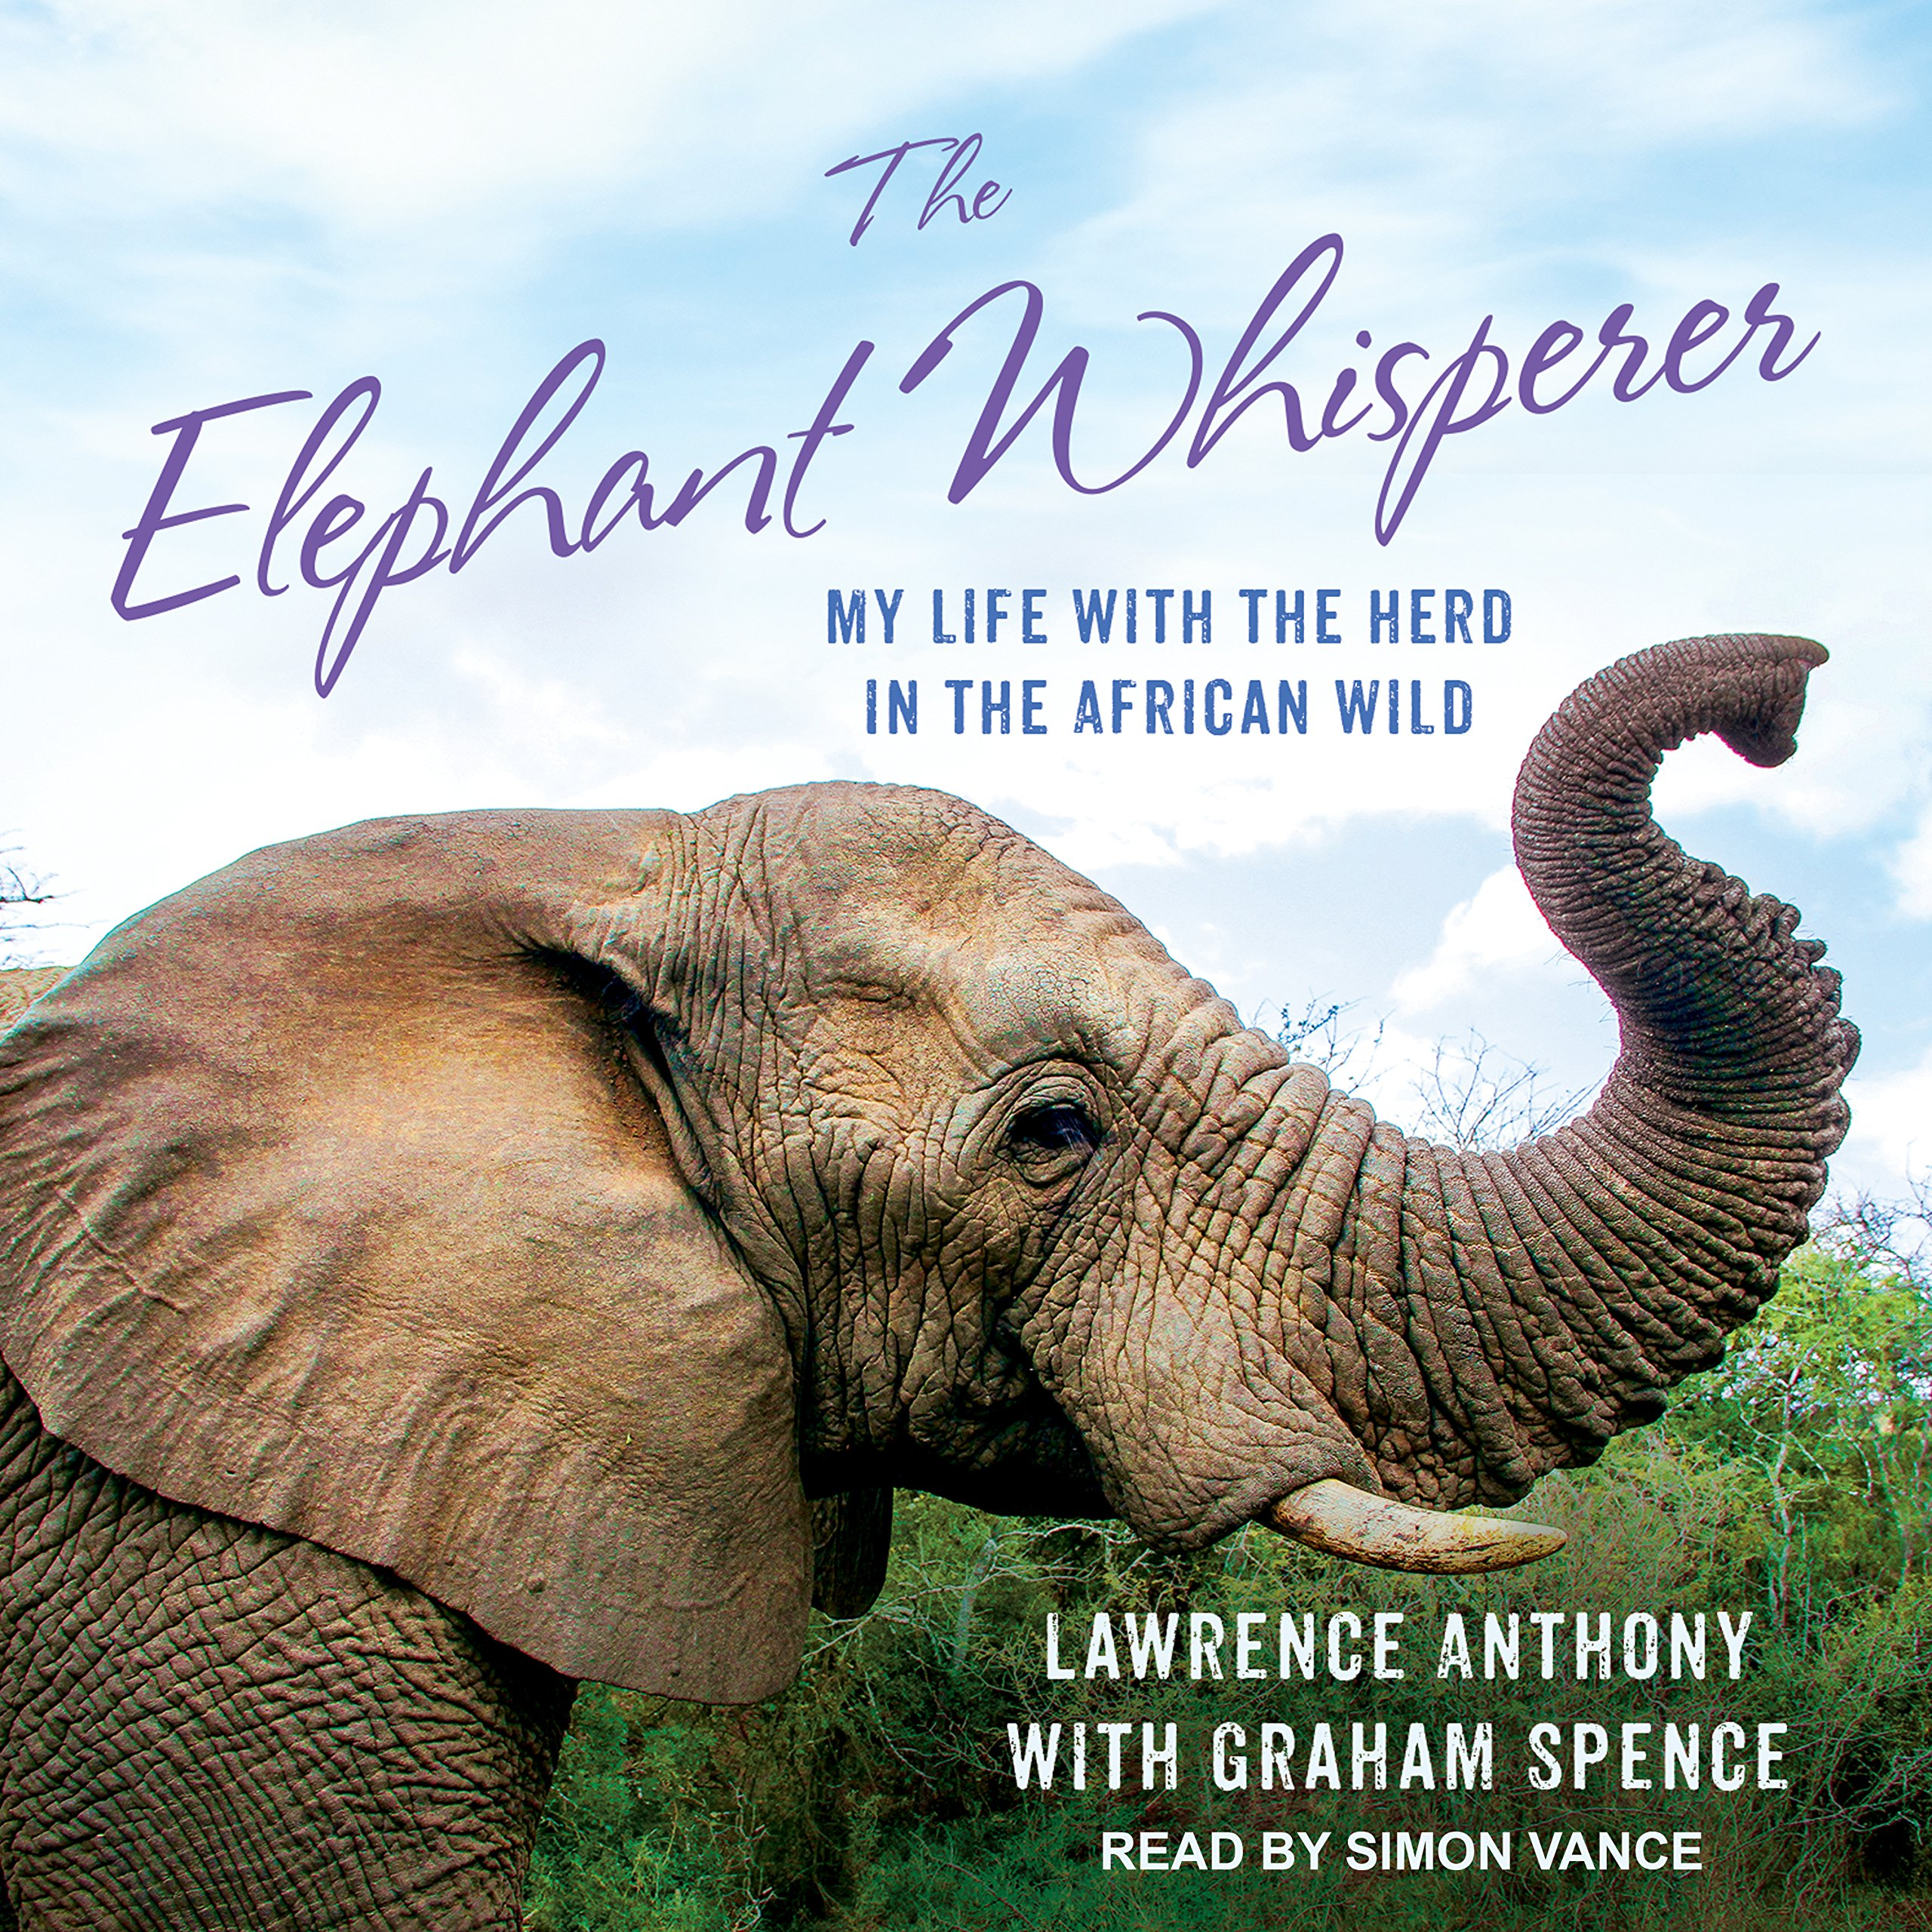 The Elephant Whisperer: My Life With the Herd in the African Wild:  Amazon.co.uk: Lawrence Anthony, Simon Vance, Thea Feldman, Graham Spence:  9781541453340: ...